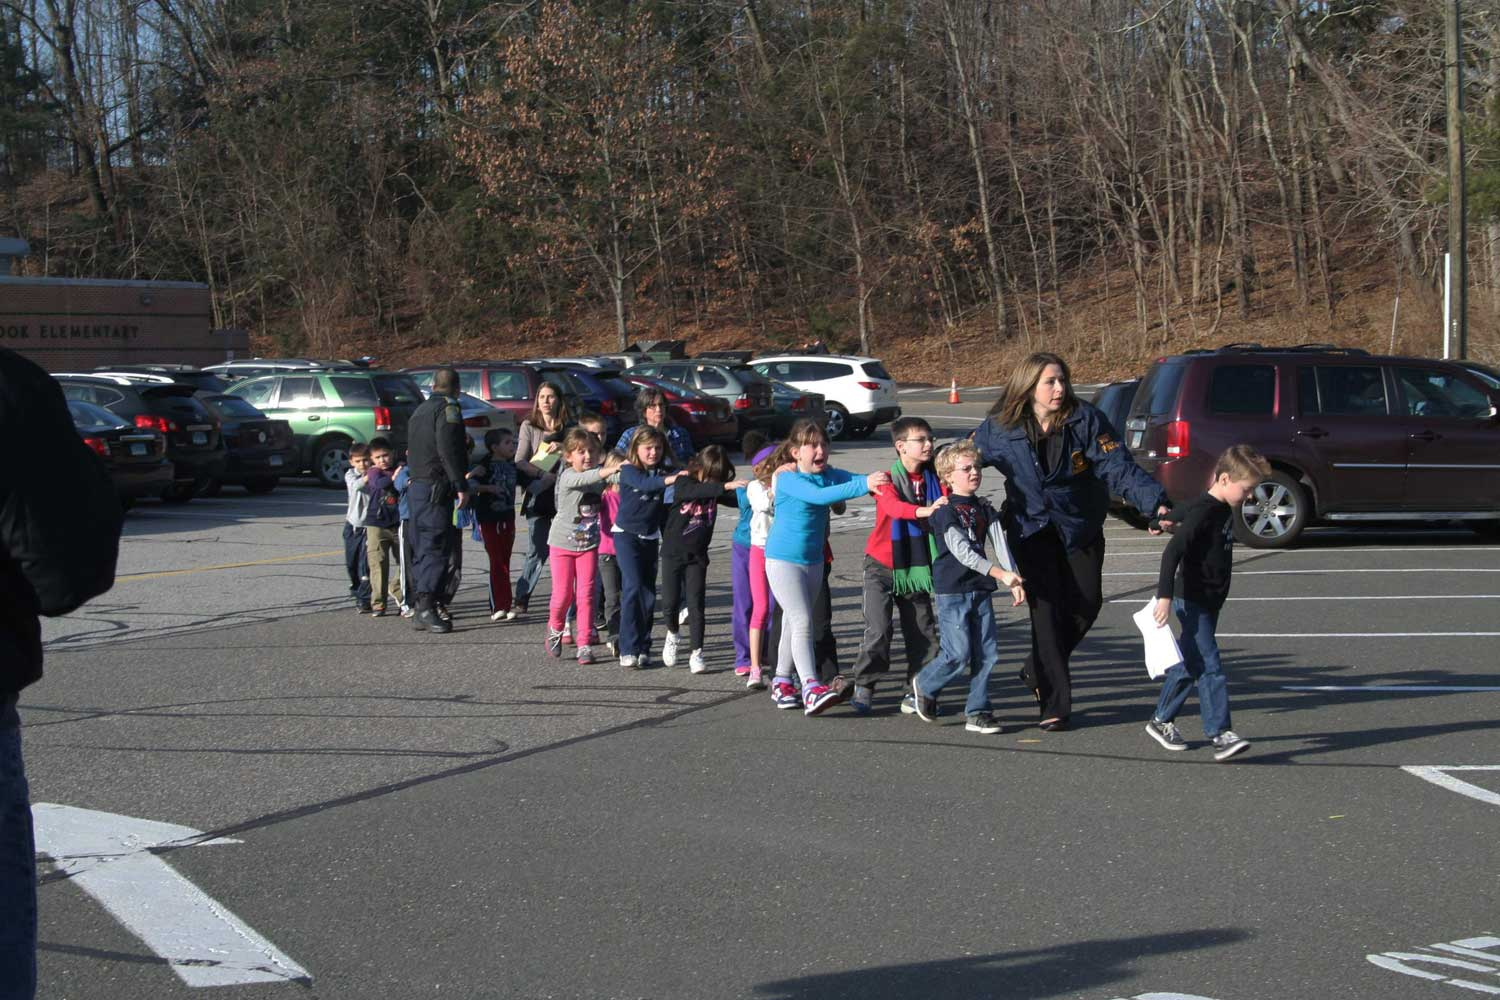 The following photos were taken on Dec. 14, 2012.                                Connecticut State Police lead a line of children from the Sandy Hook Elementary School in Newtown, Conn.